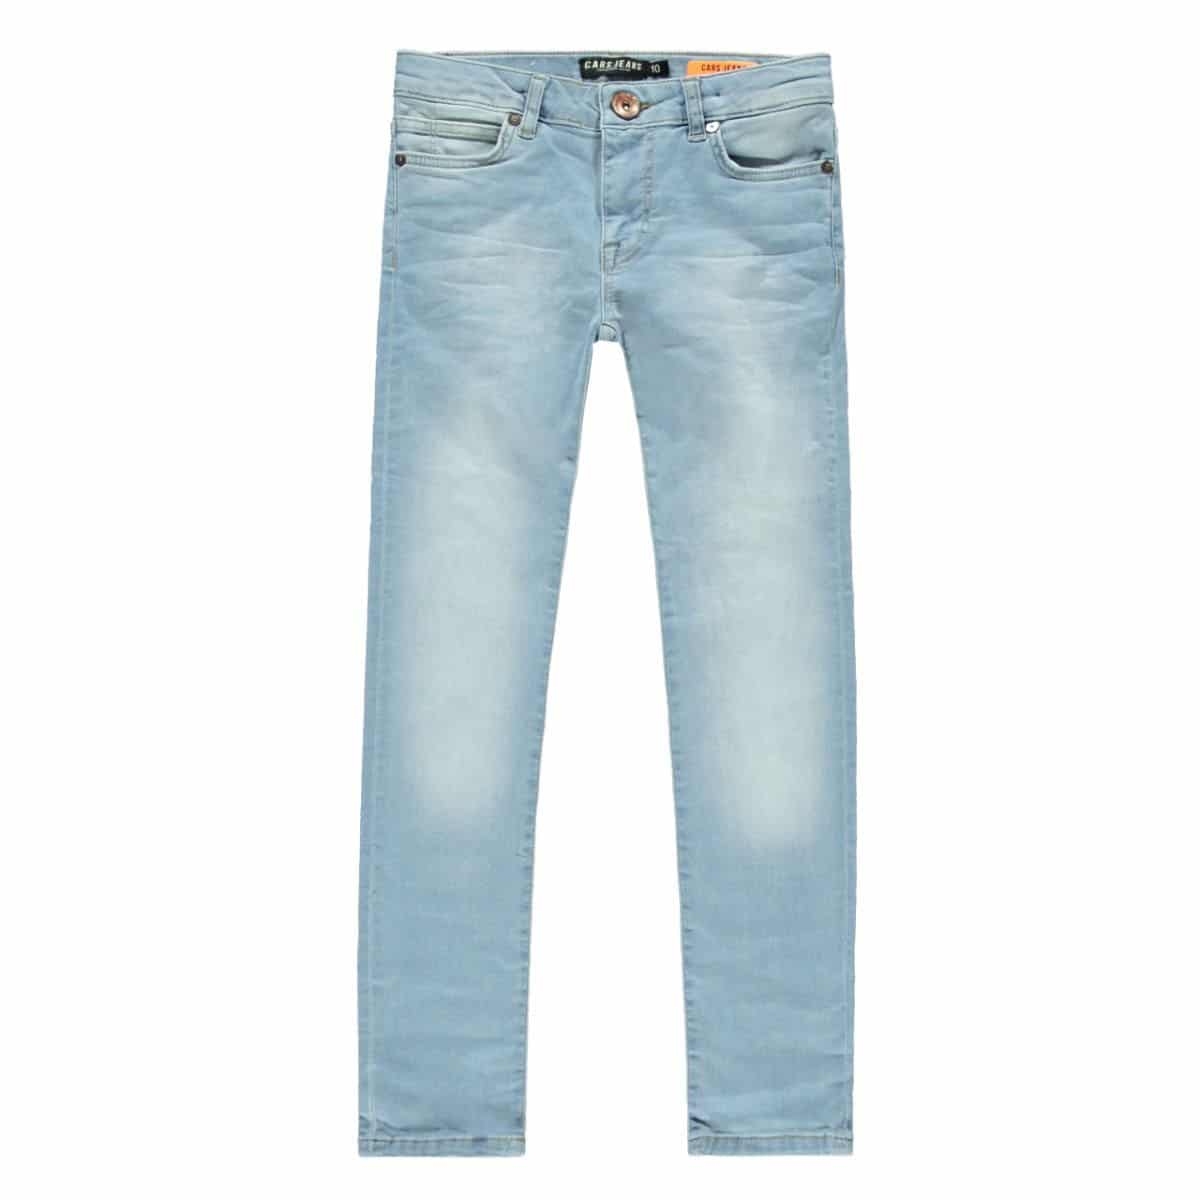 Cars Jeans Trust Stw/Bl Used